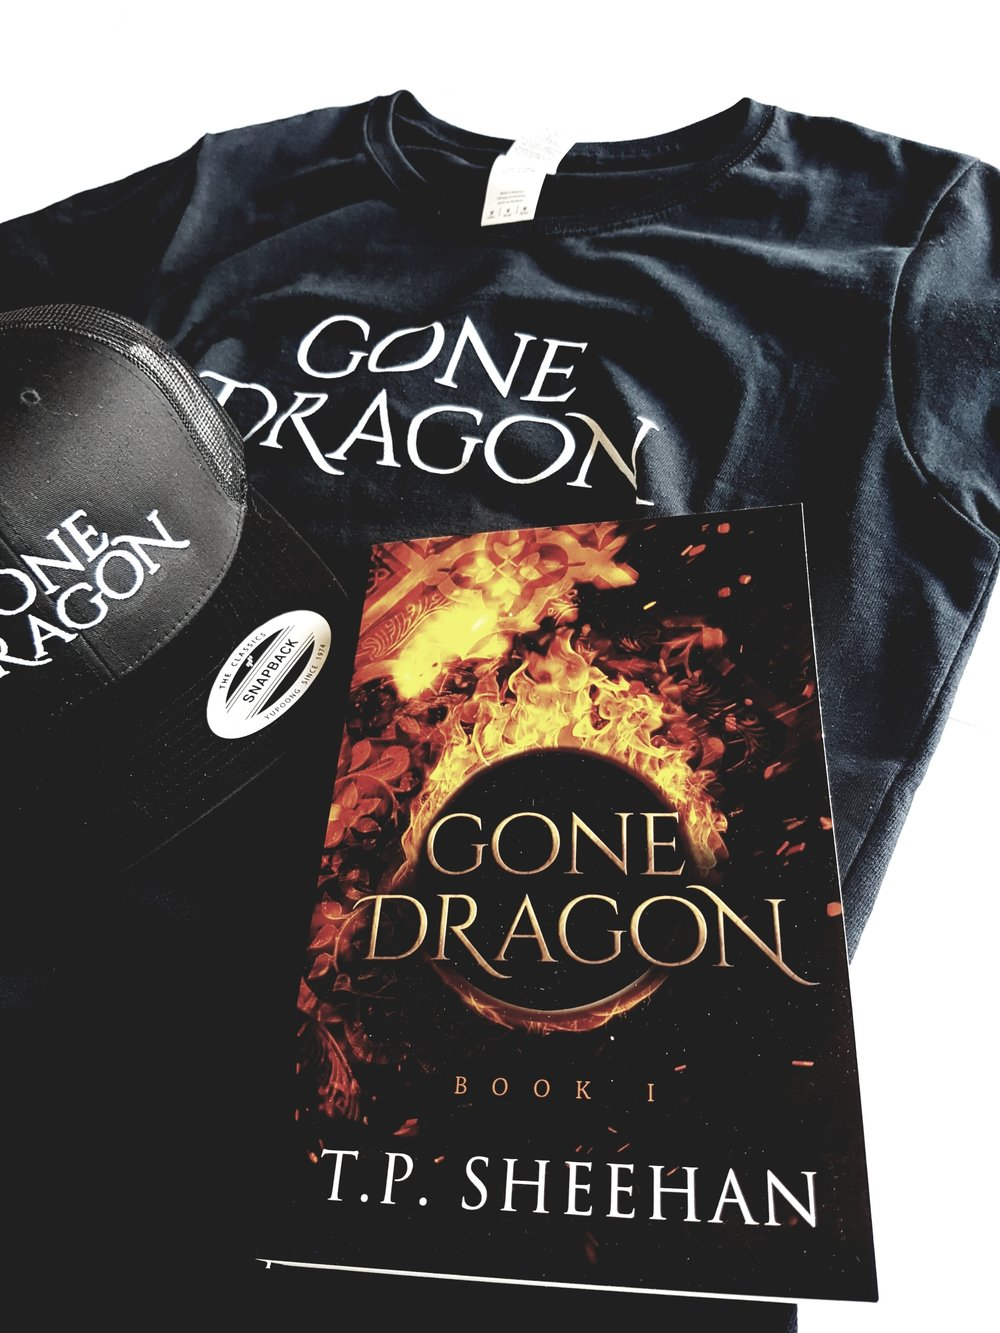 Win another Gone Dragon book, cap and t-shirt!